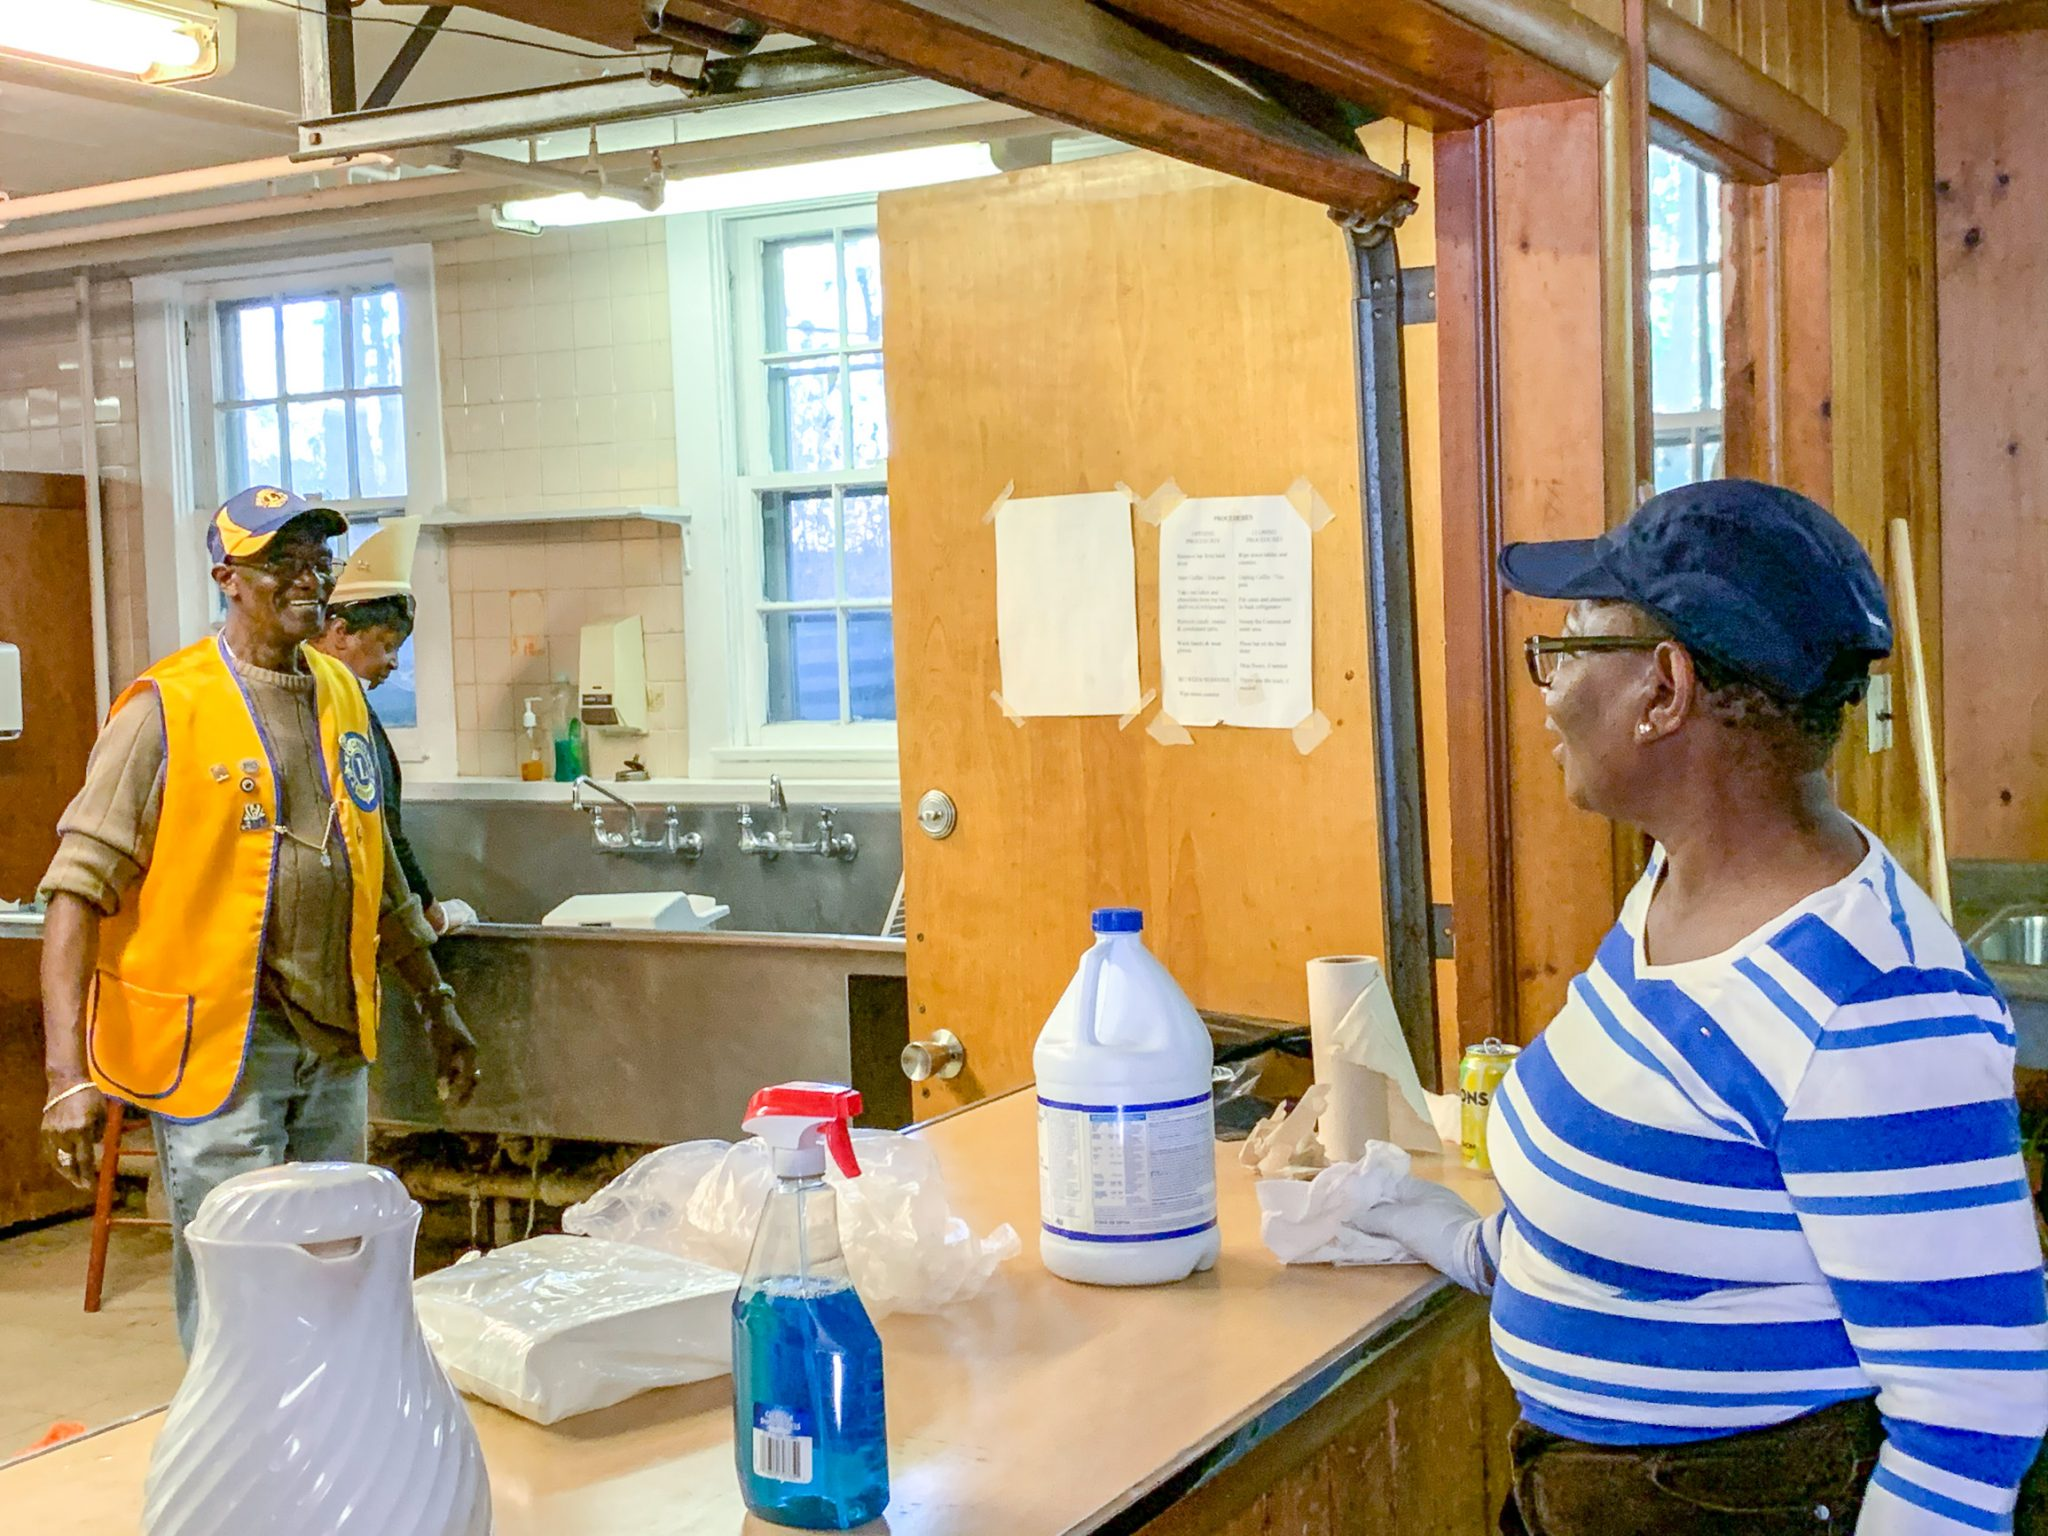 Two Lions Members stand in a kitchen inside VCB surrounded by cleaning products and tools.